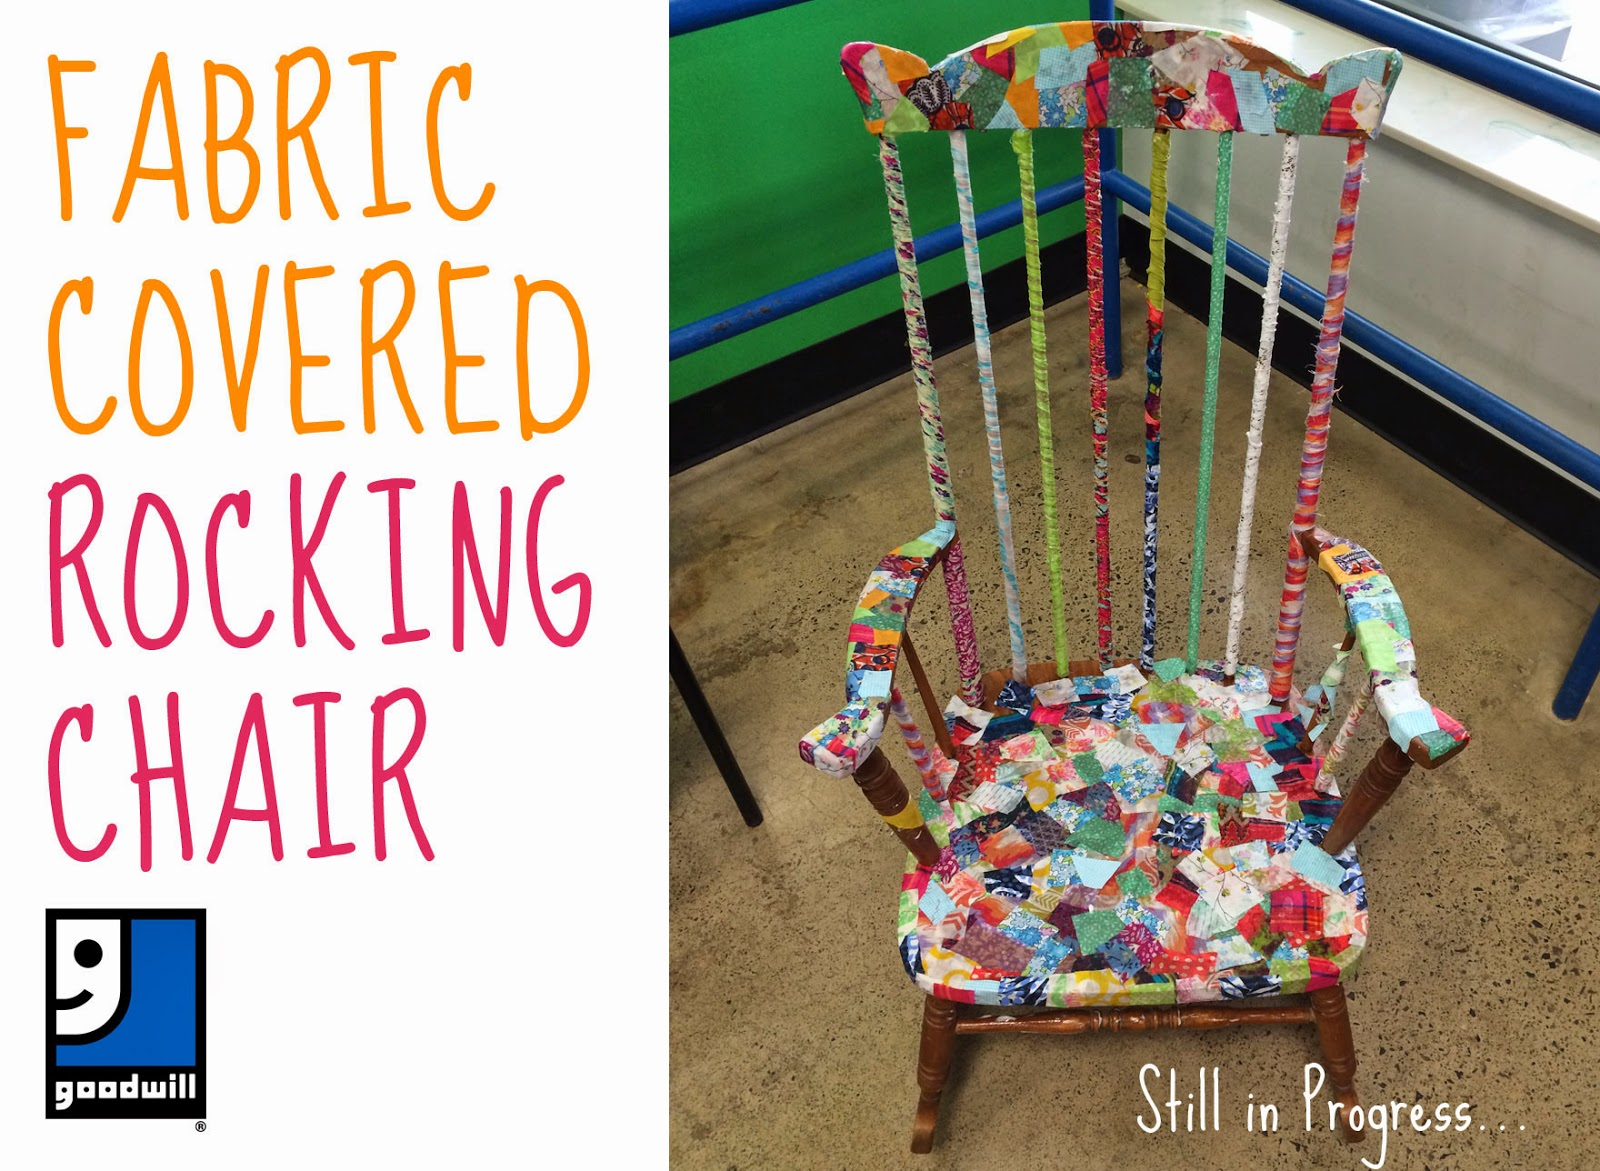 The Traveling Fabric Covered Rocking Chair